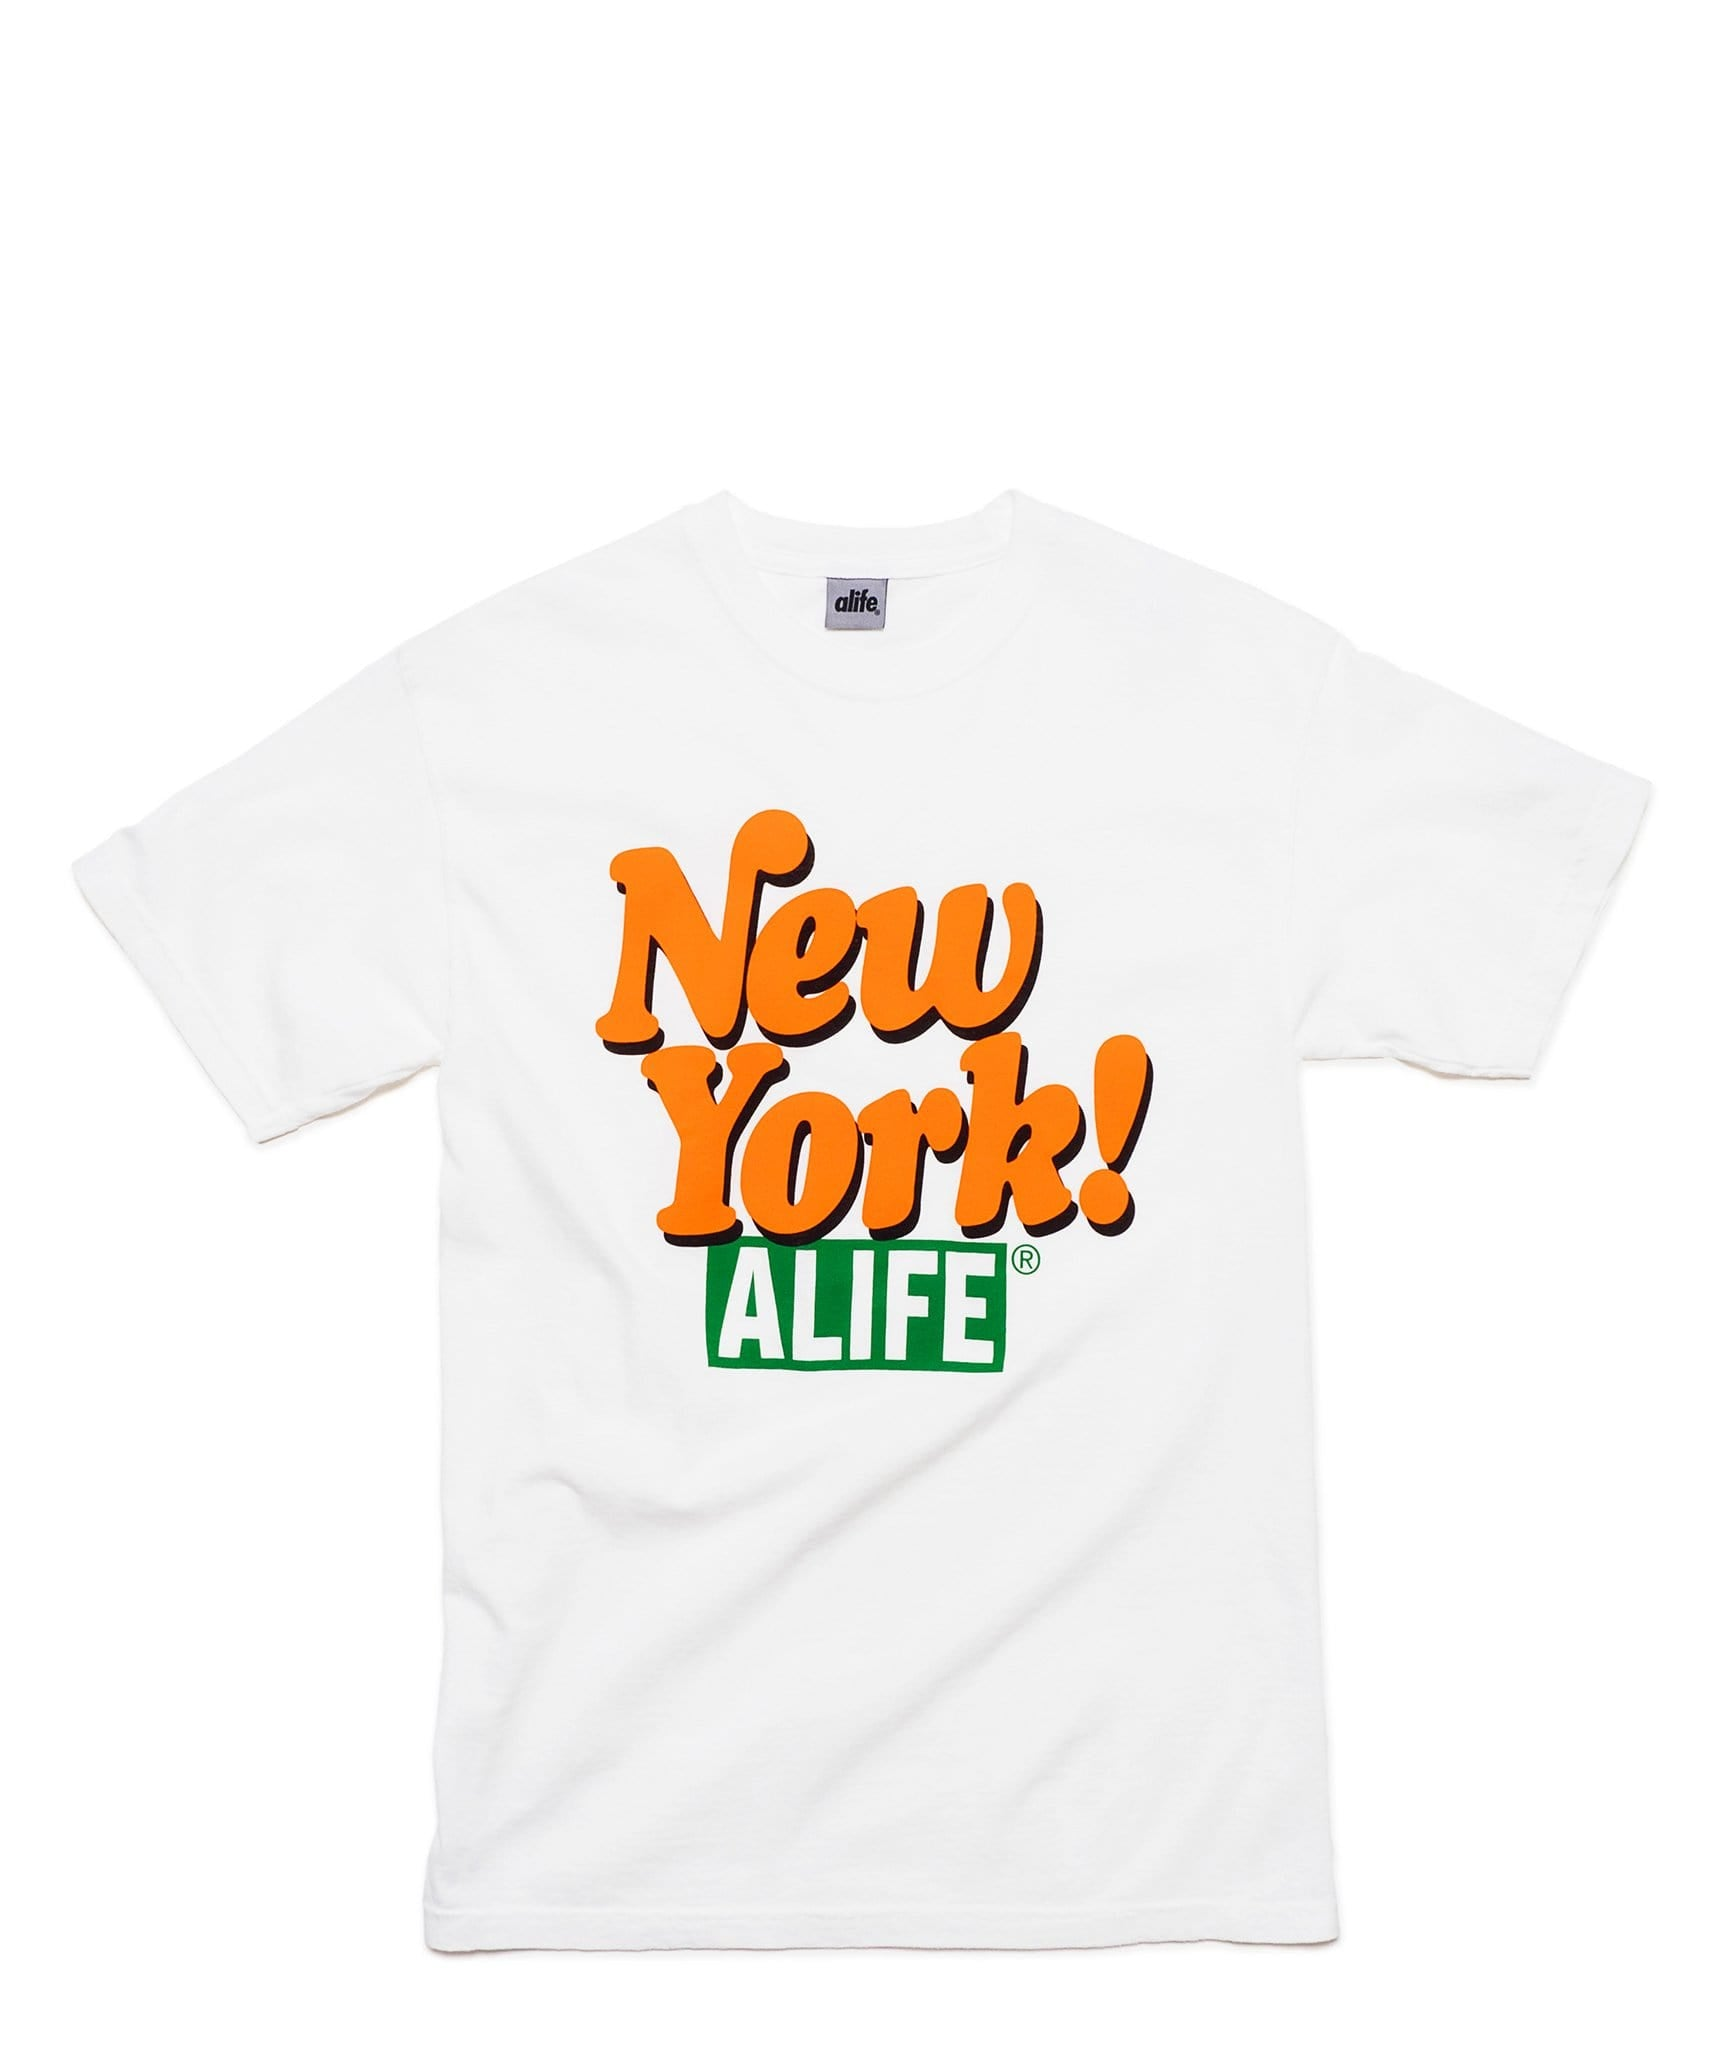 Alife New York! Tee